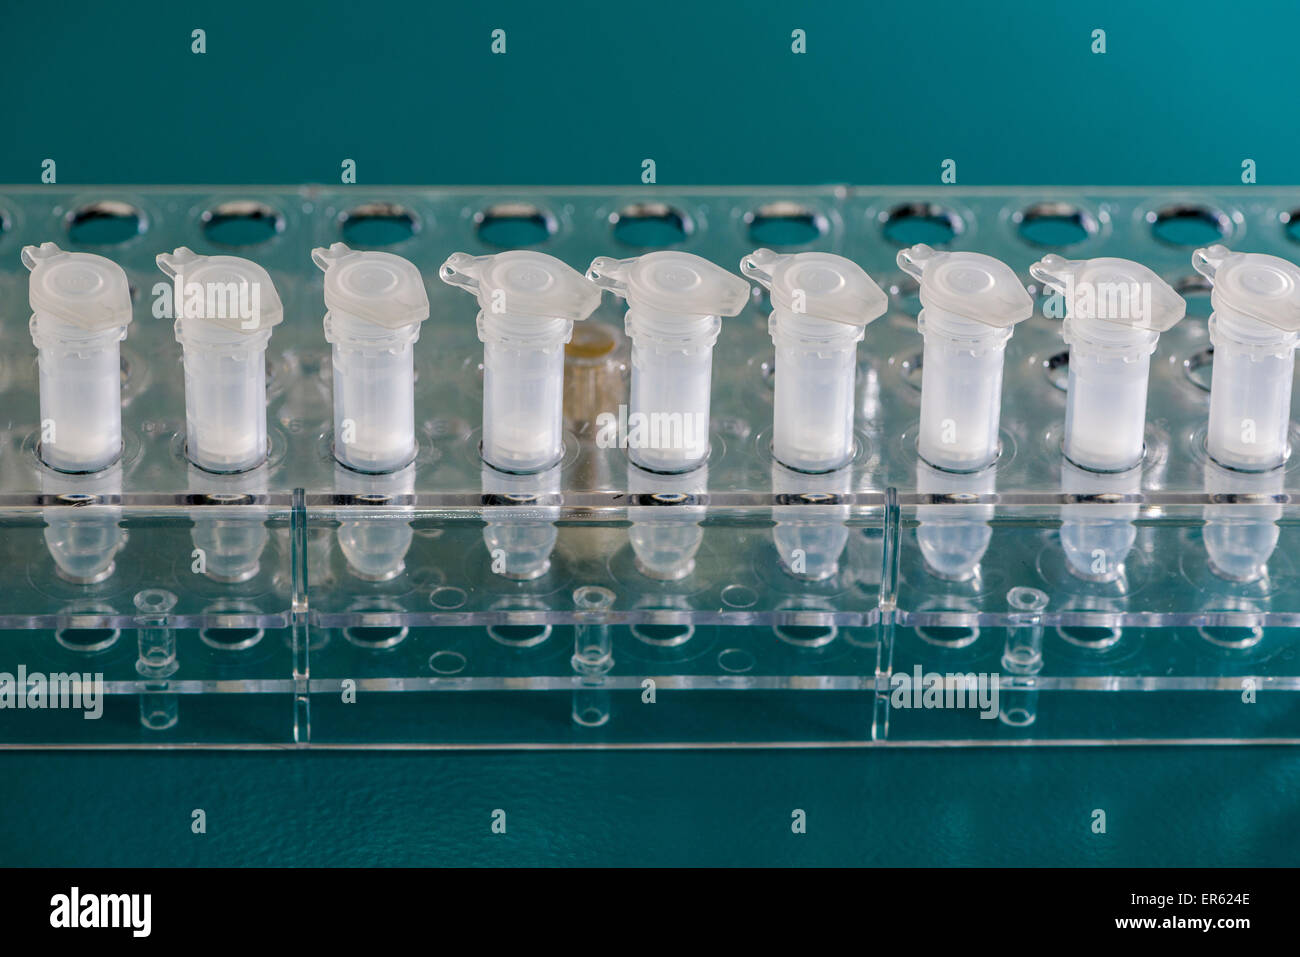 White Spin Filter sorted in a transparent rack, Chemnitz, Saxony, Germany - Stock Image